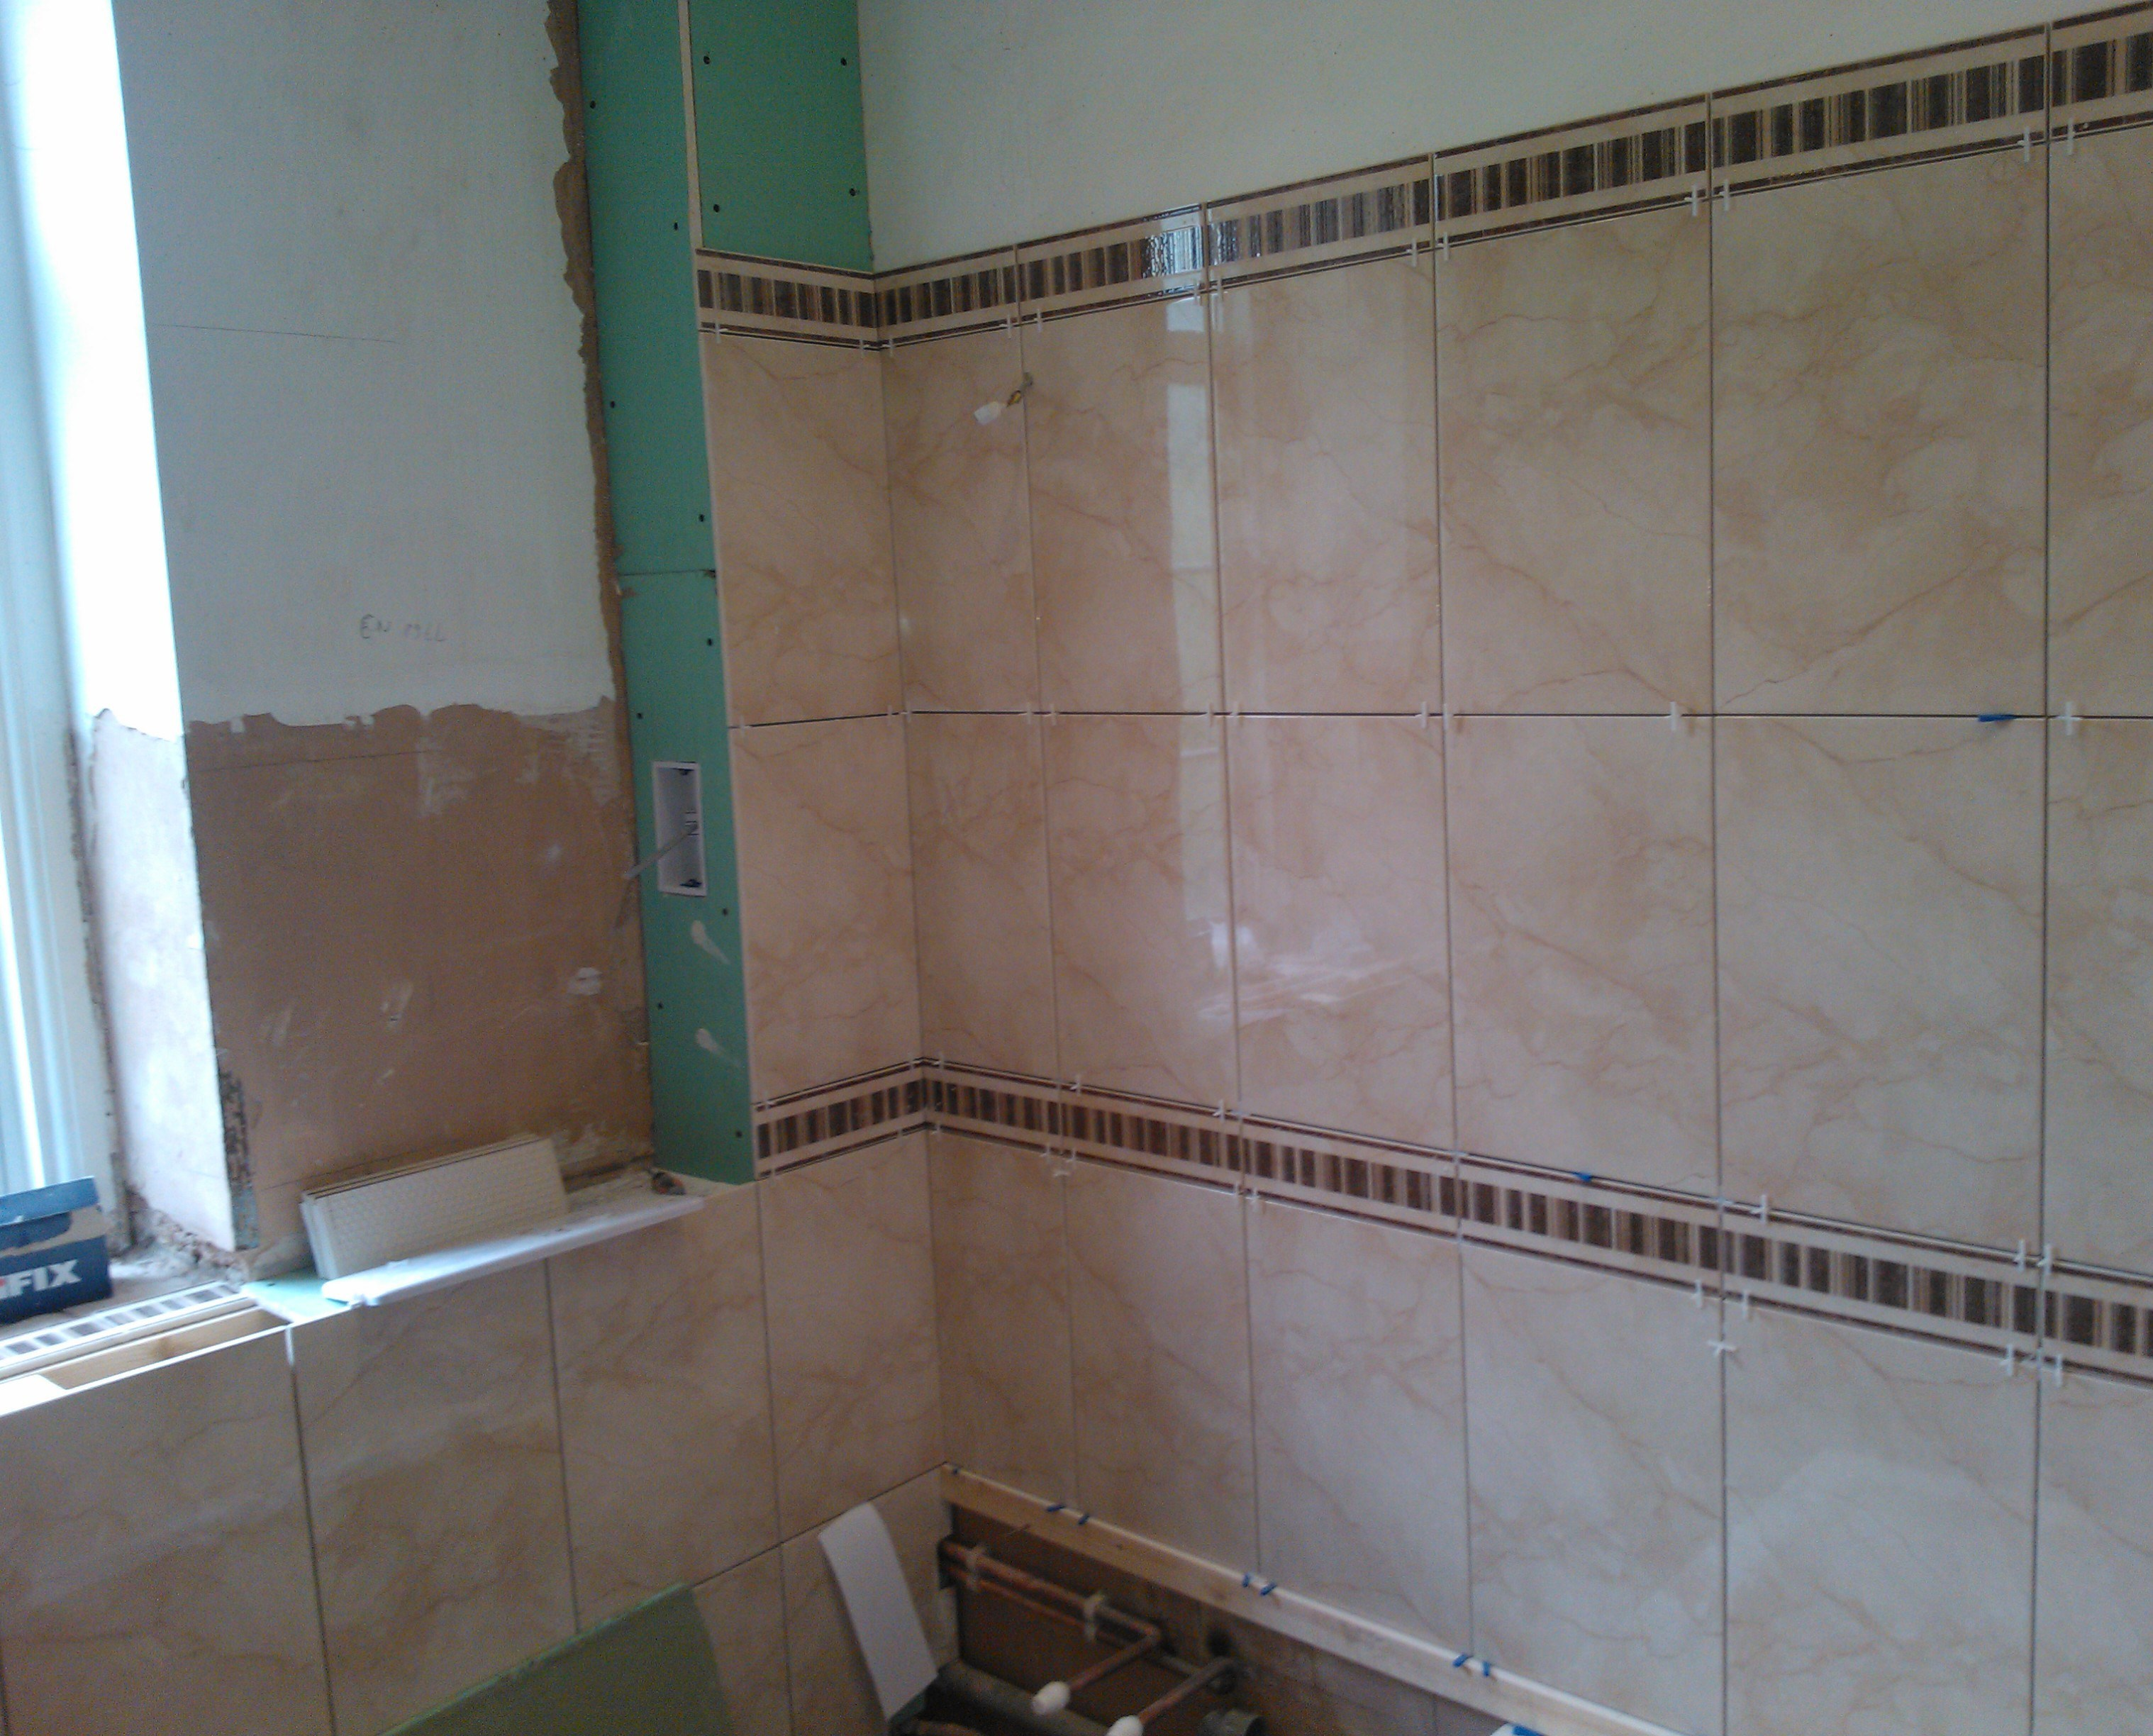 Finchley_Flat refurbishement_ (6)